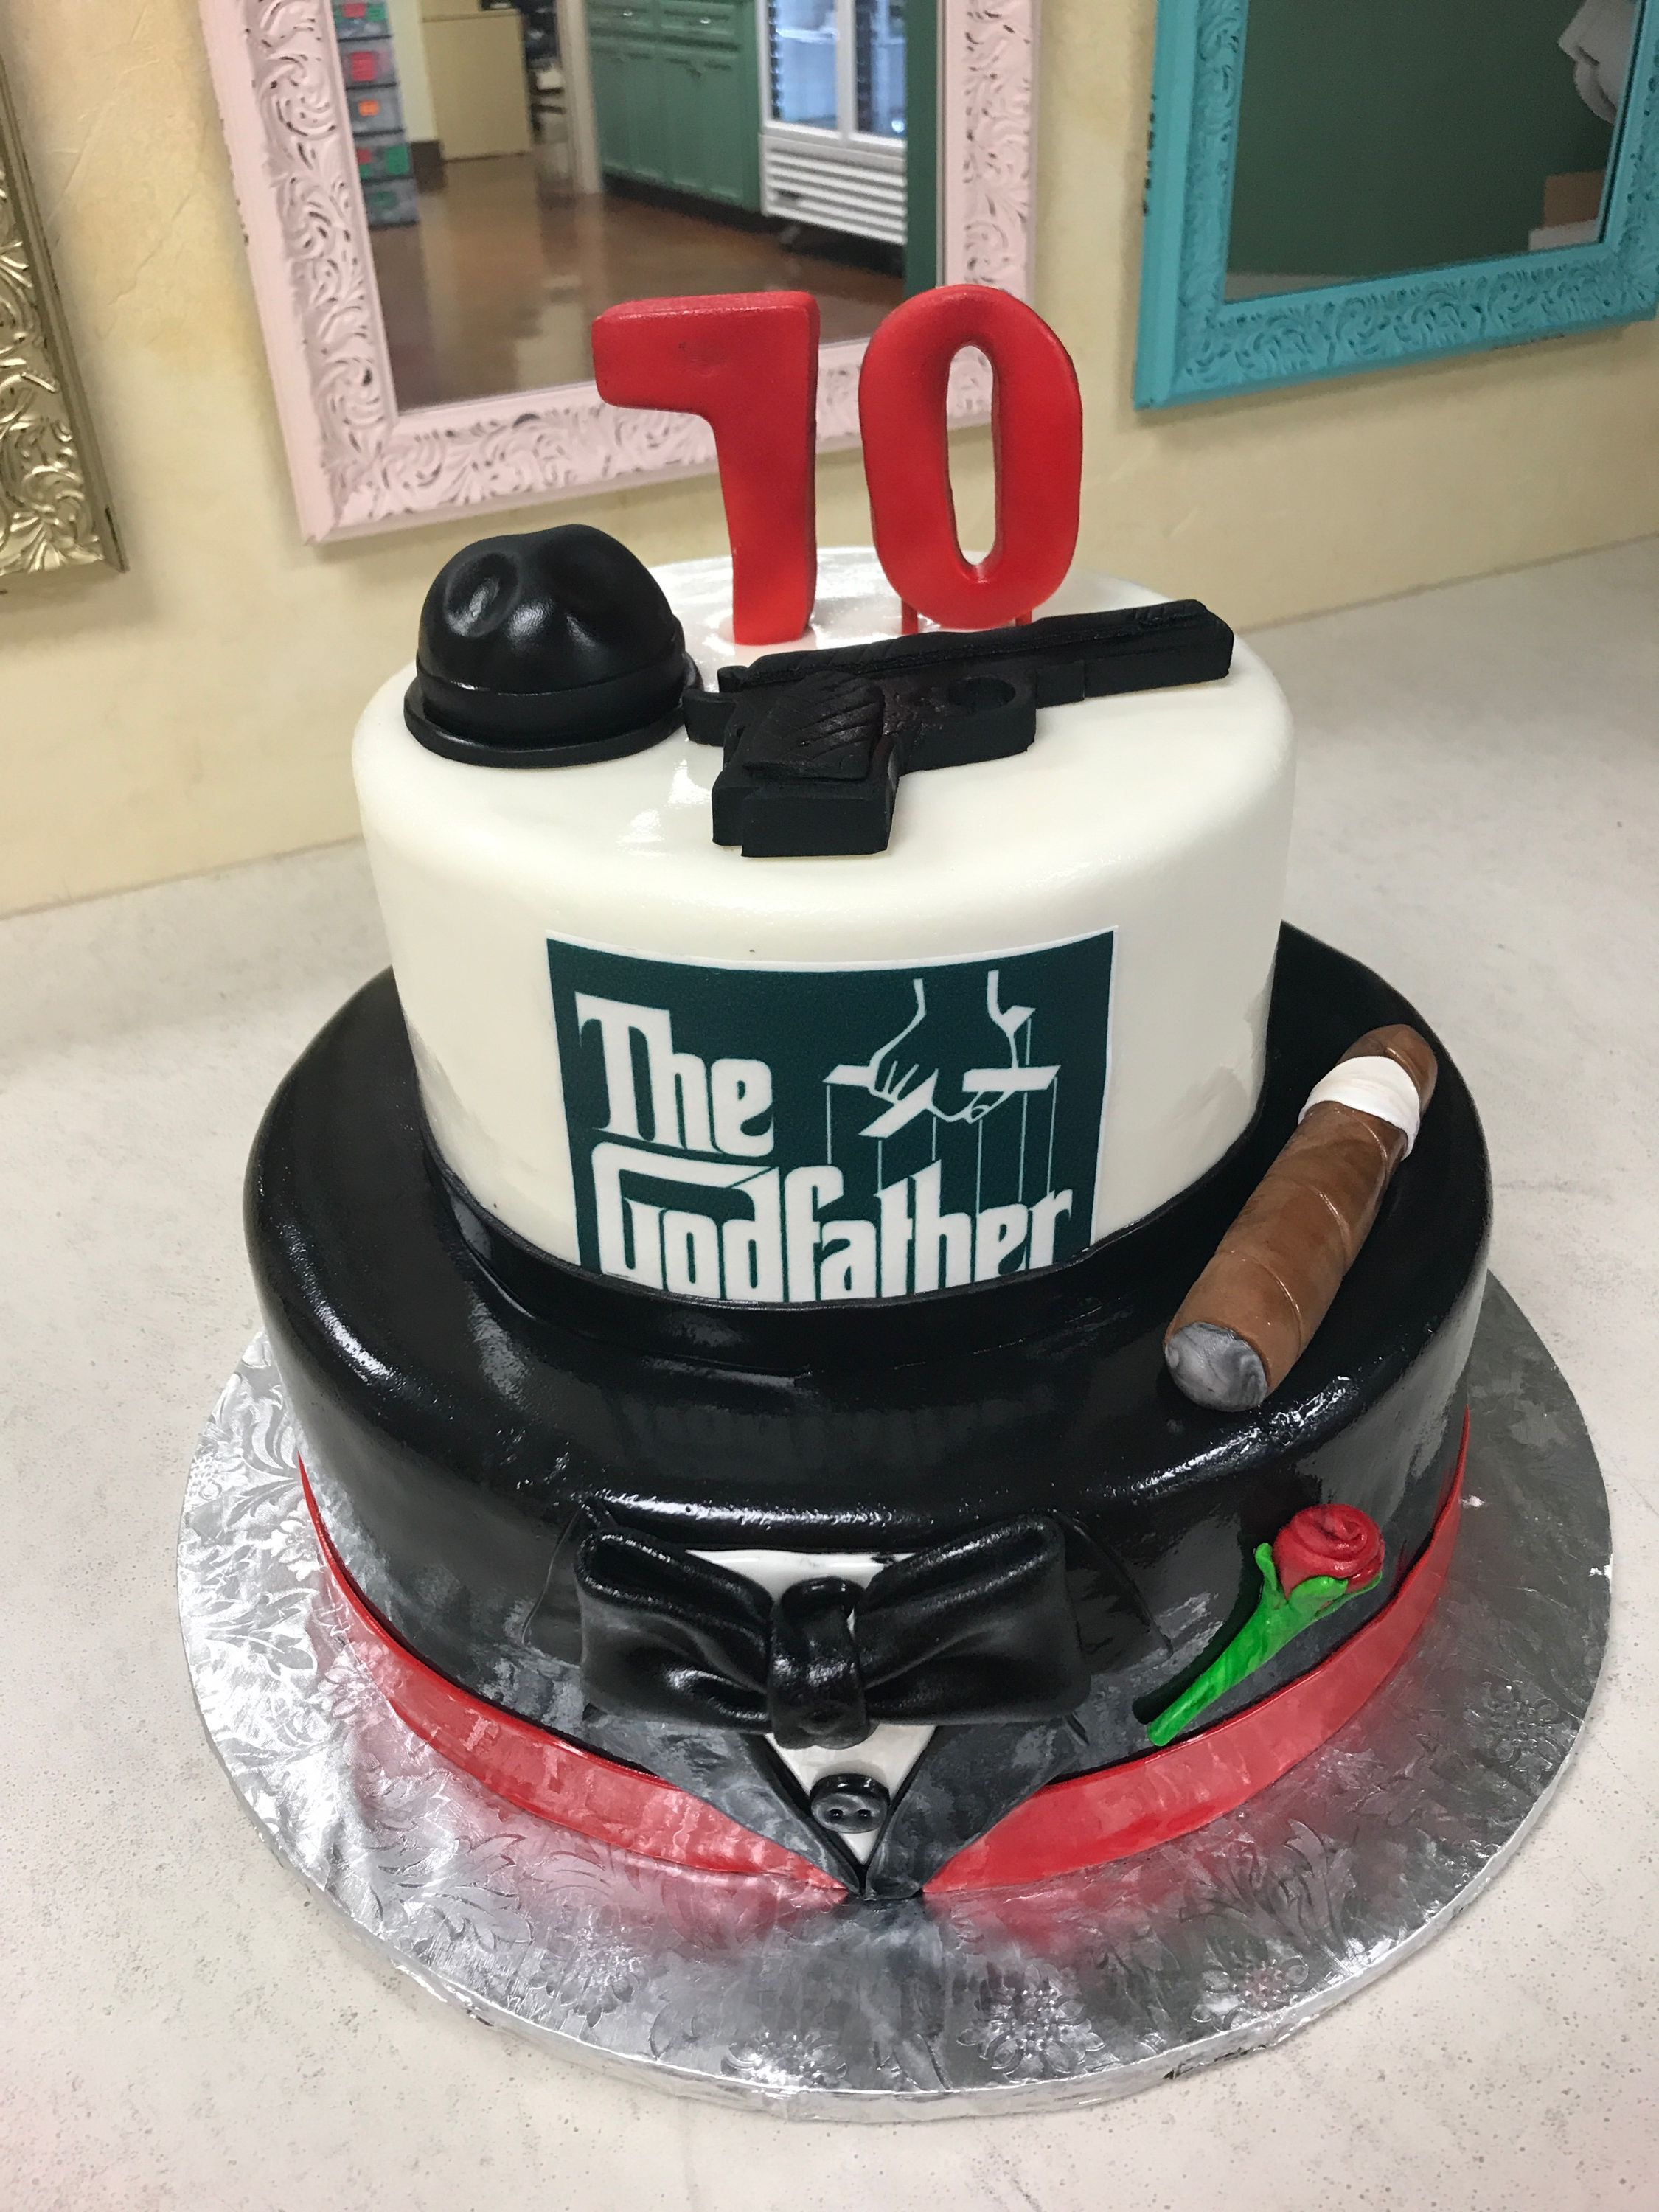 GODFATHER CAKE By EL BOLILLO BAKERY In HOUSTON TX Elbolillo Bolillo Houston Godfather Godfathercake Cake Birthdaycake Tresleches Panaderia